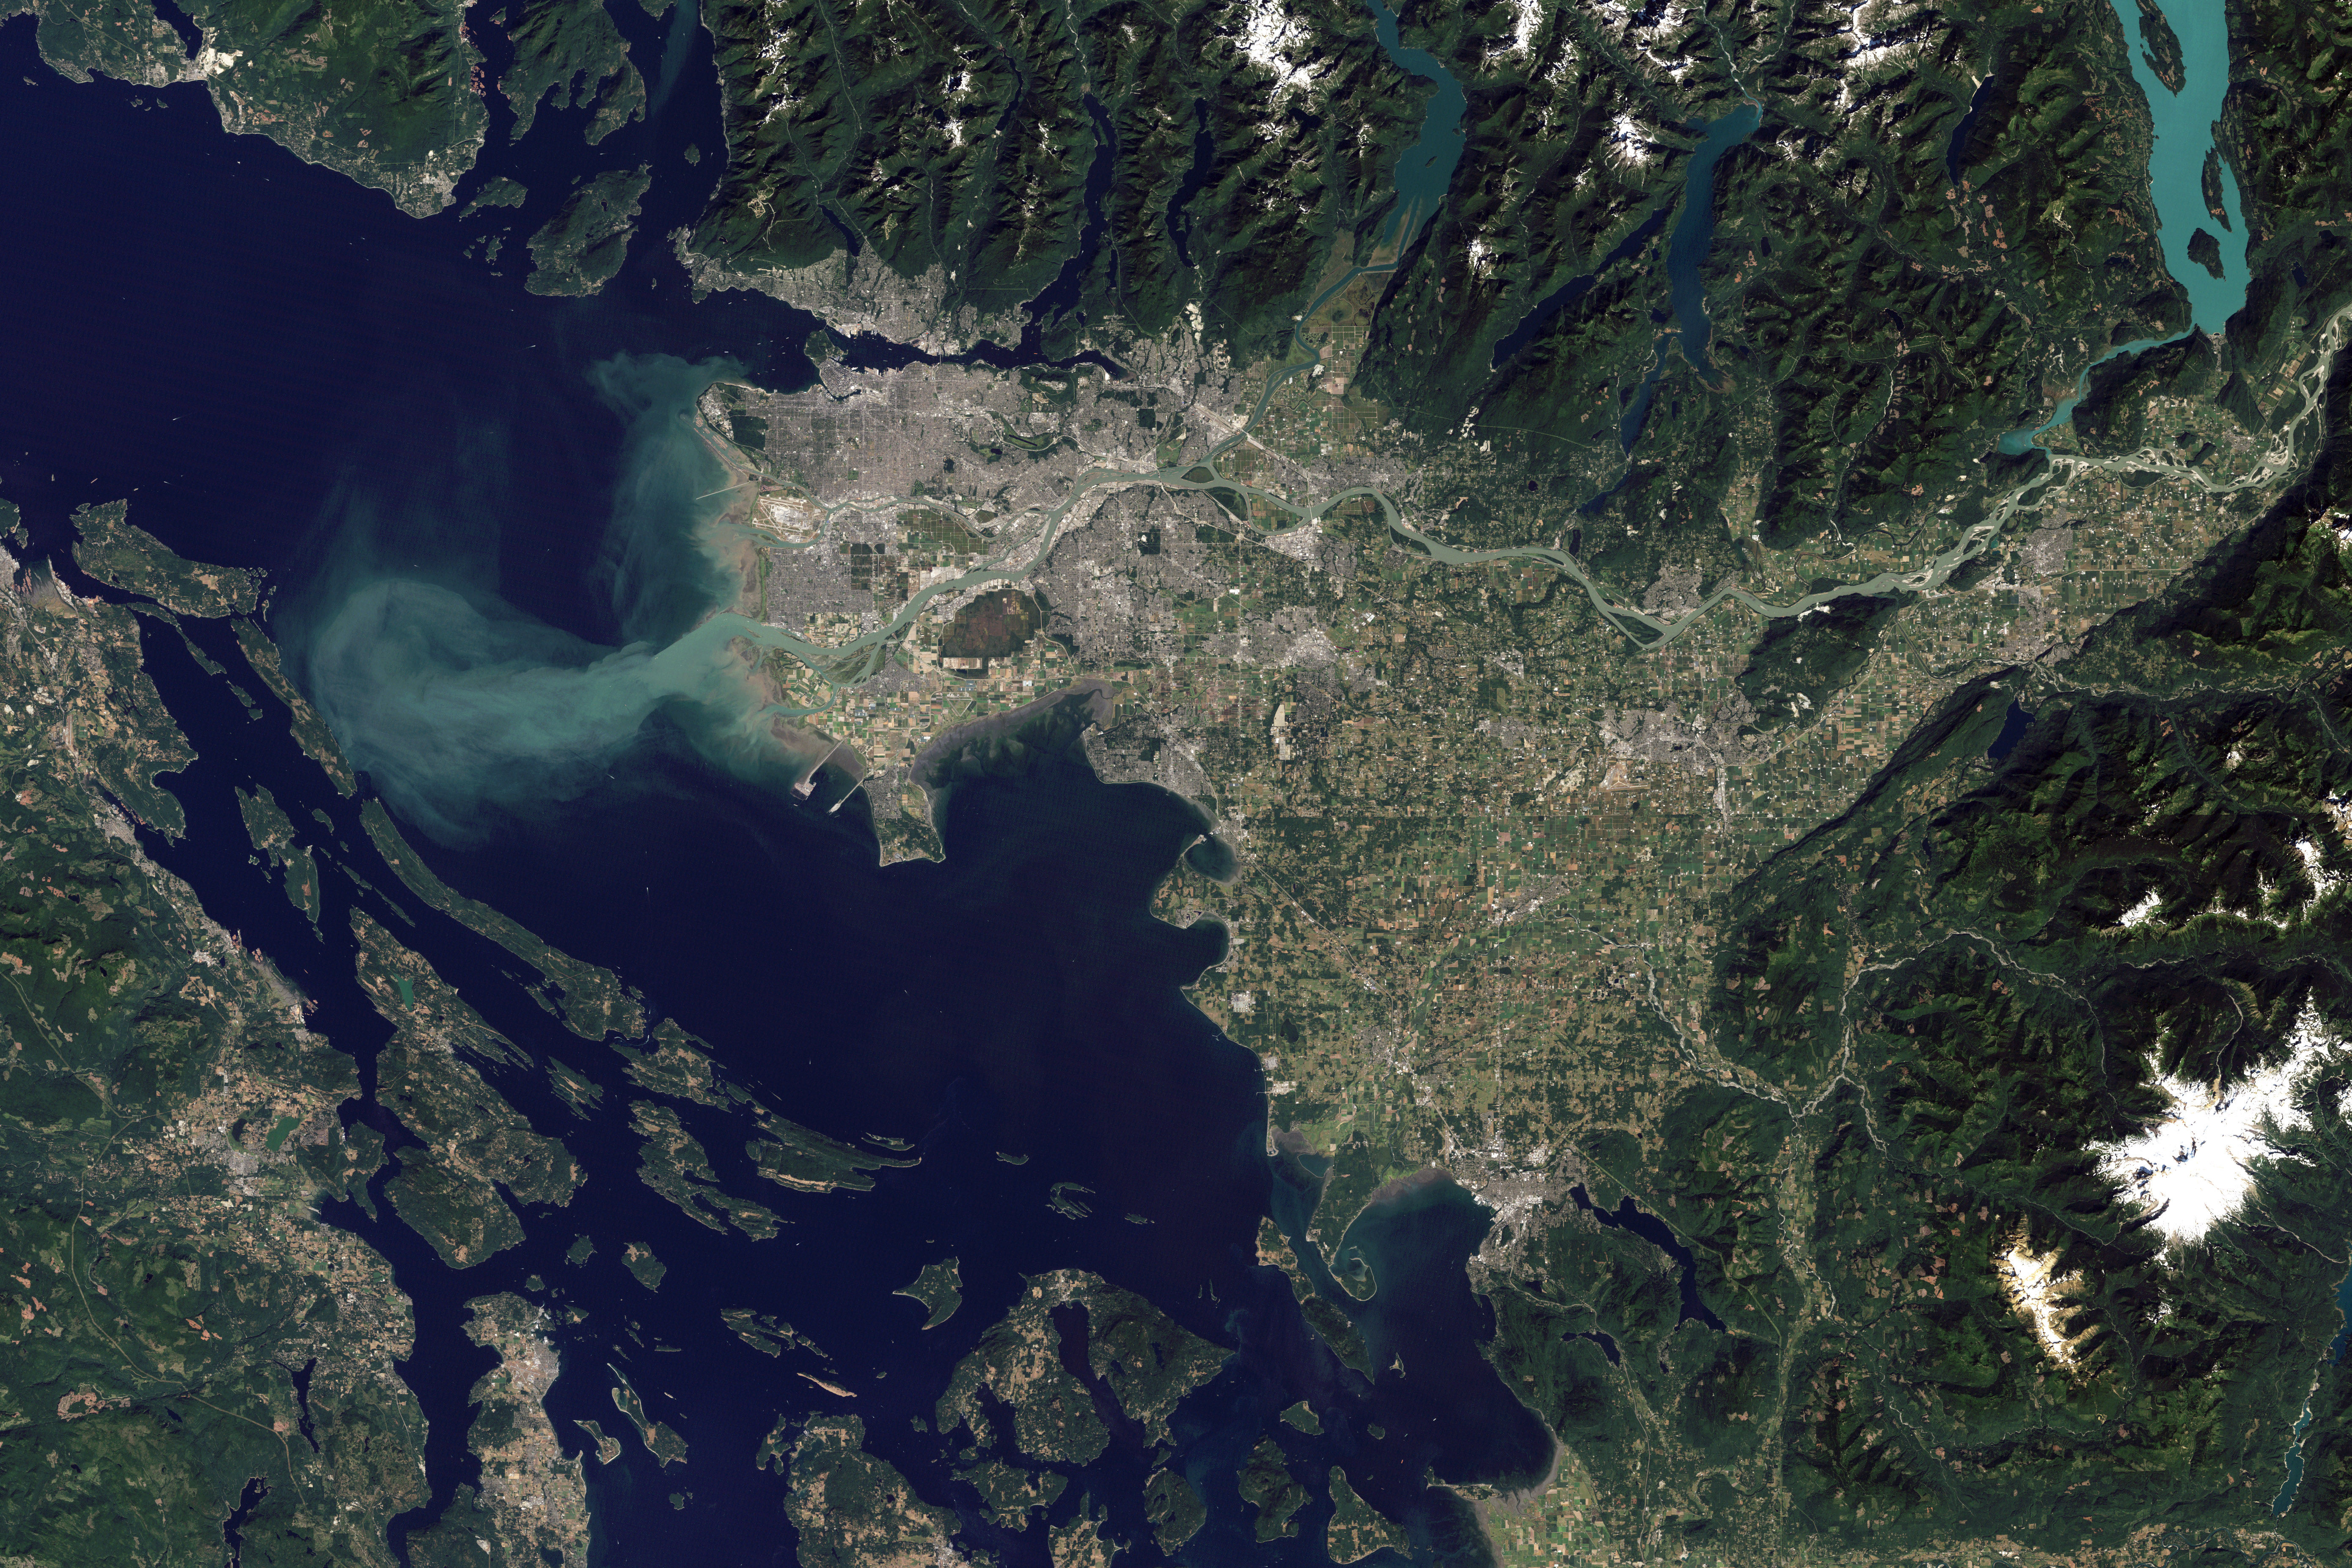 Winter Olympics City: Vancouver View from Space